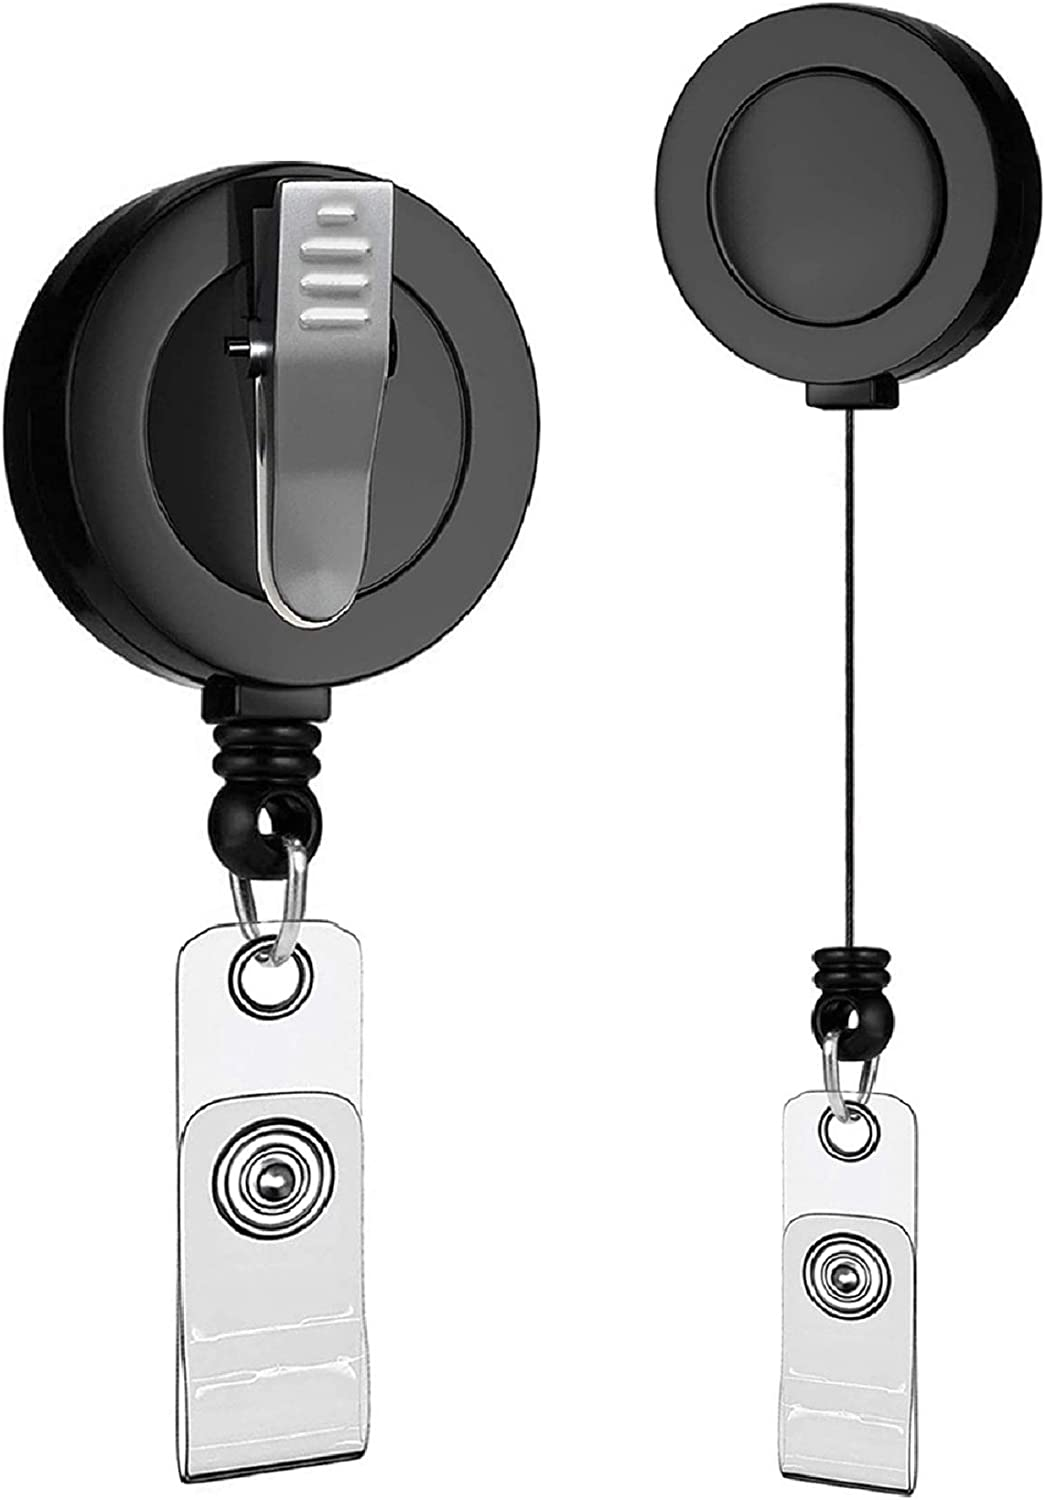 Vzrflee 20 Pack Retractable Badge Reel with 360° Swivel Alligator Clip Durable Badge Clip Retractable ID Badge Holder Retractable for Office, Nurse, Teachers, Security and More